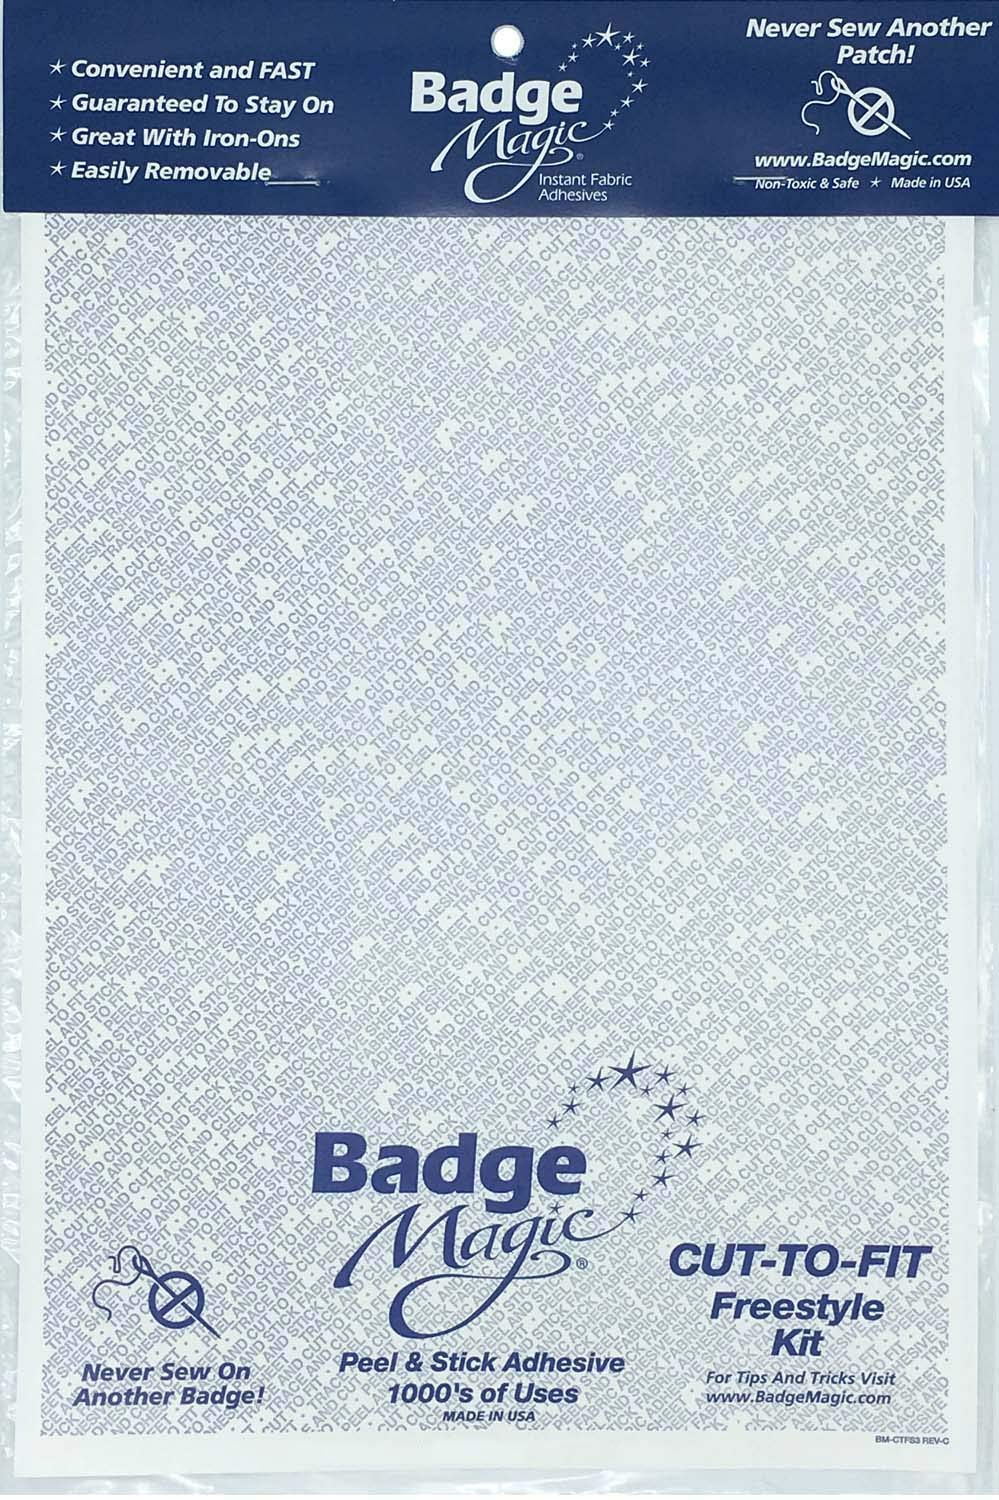 11a26136df3 Amazon.com  Badge Magic Cut to Fit Freestyle Patch Adhesive Kit  Sports    Outdoors